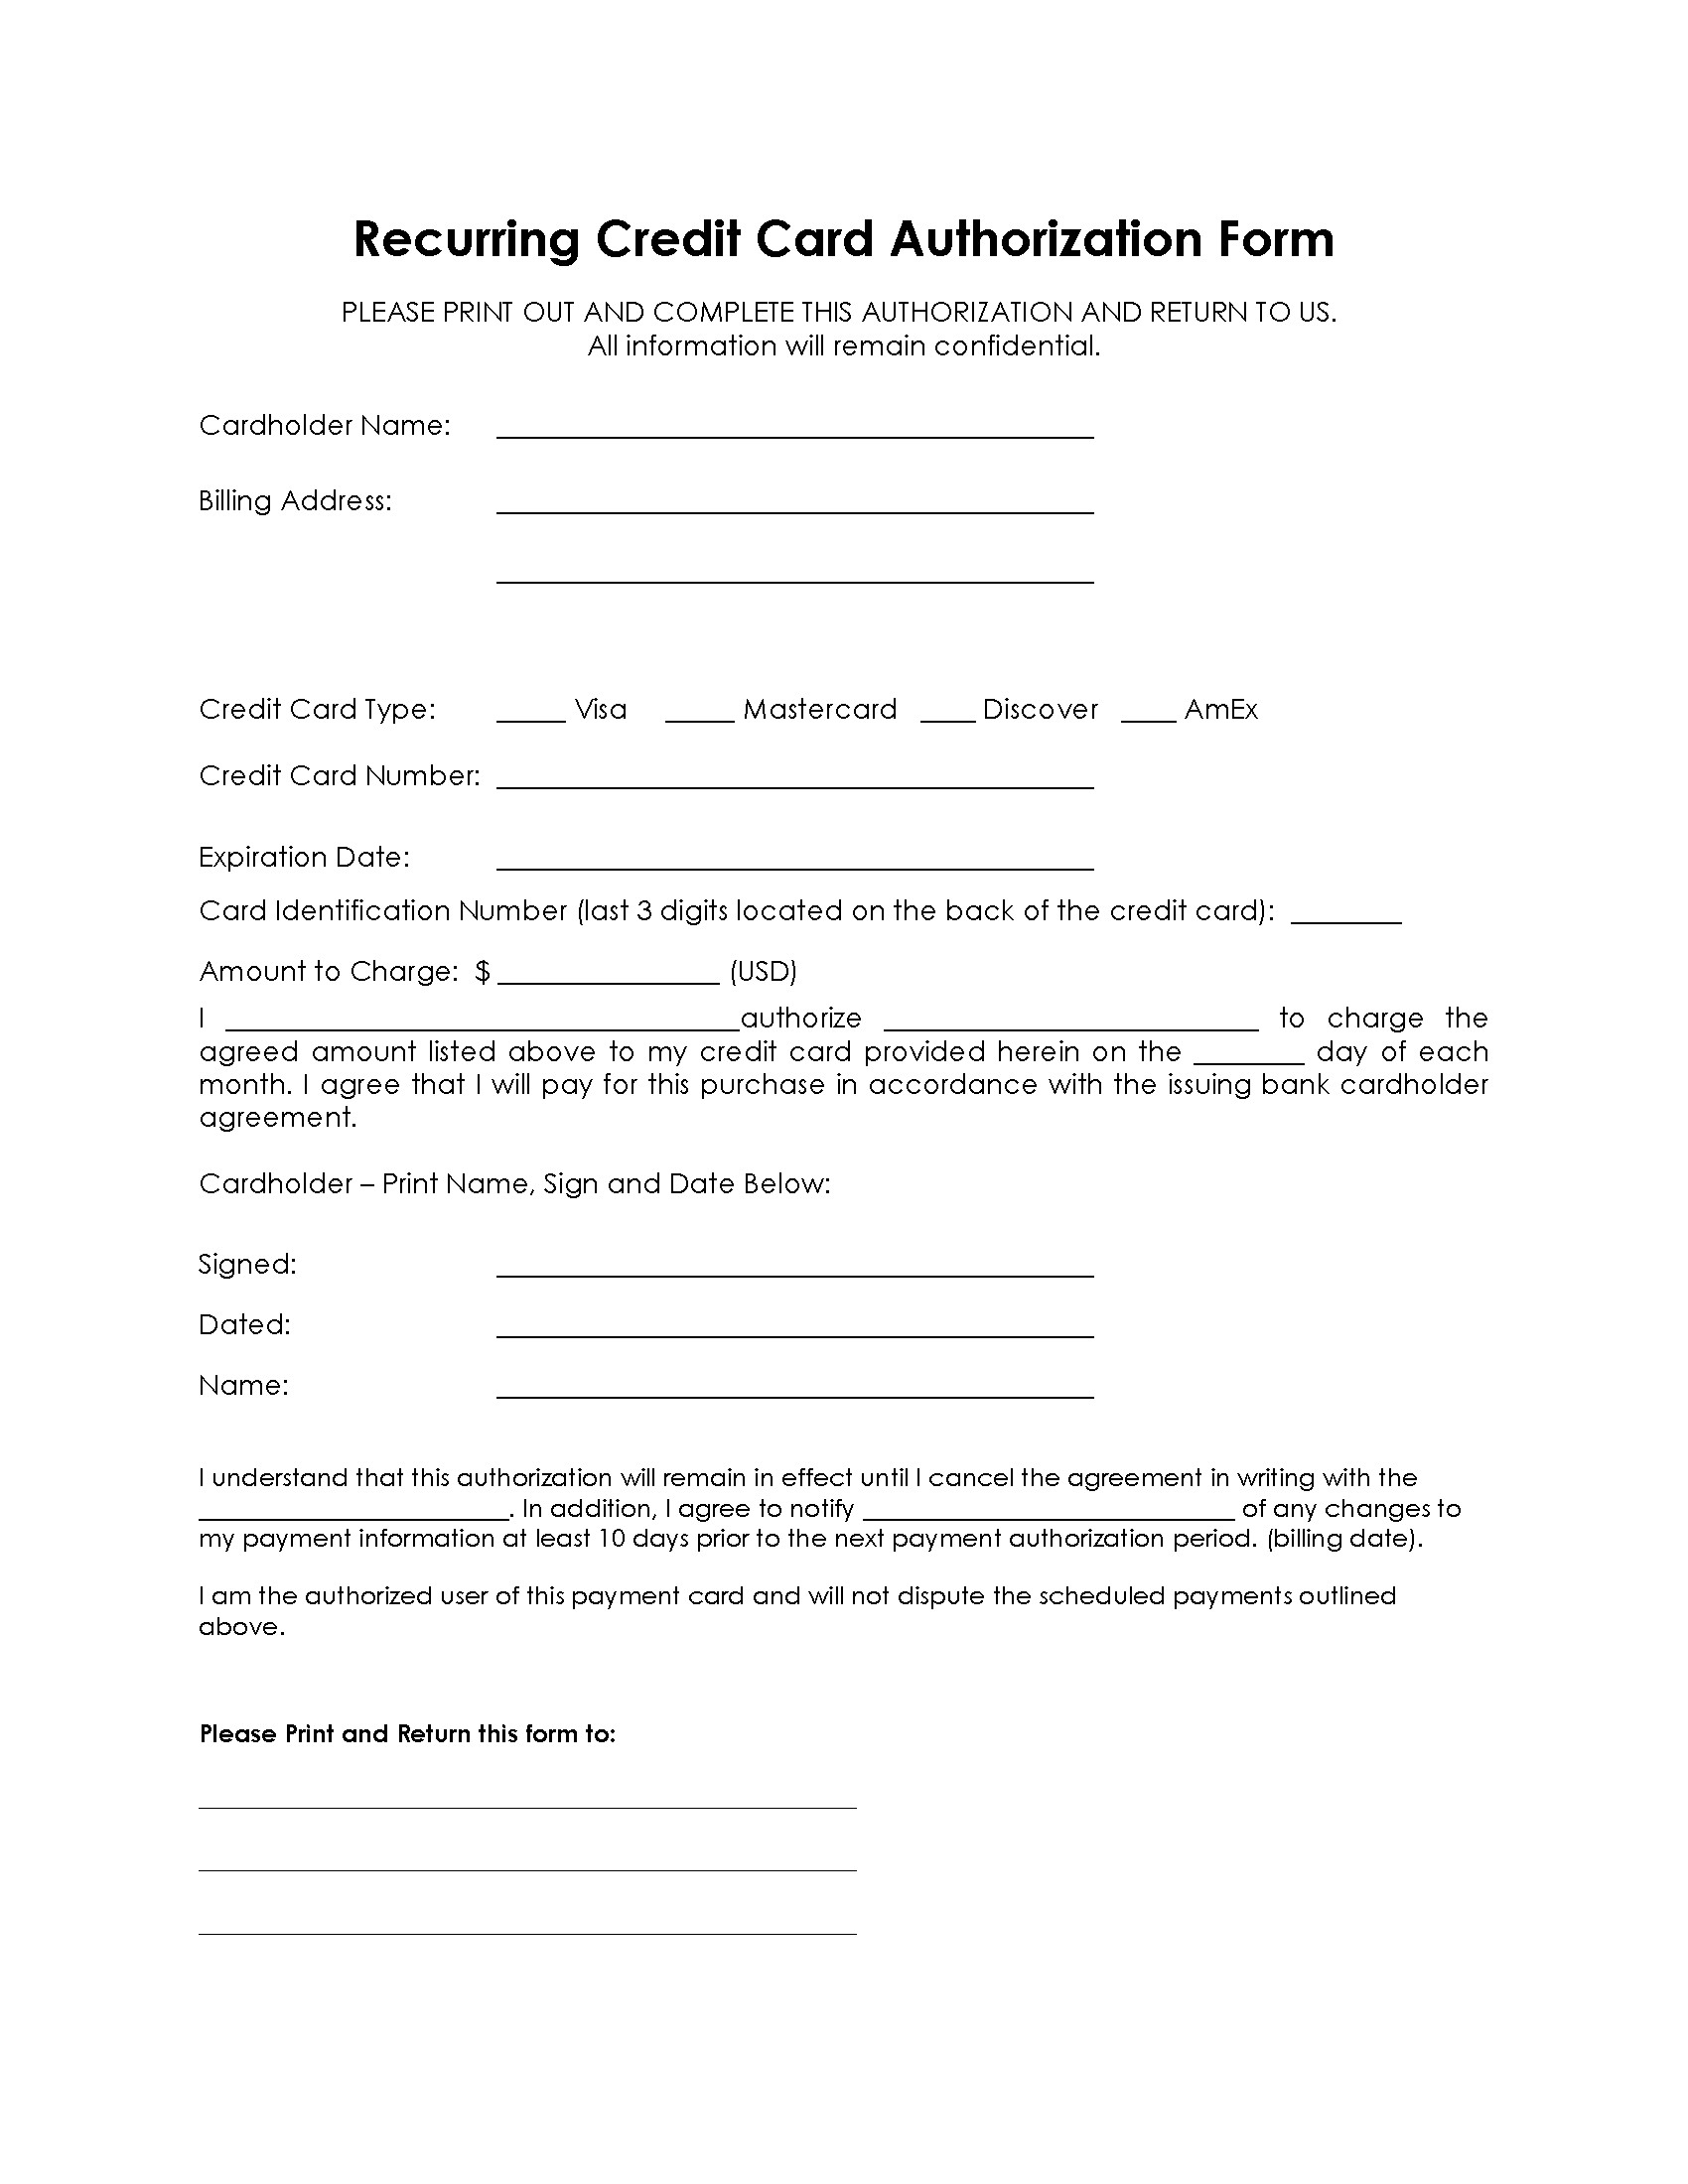 Payment Authorization form Template Recurring Payment Authorization form Free Authorization